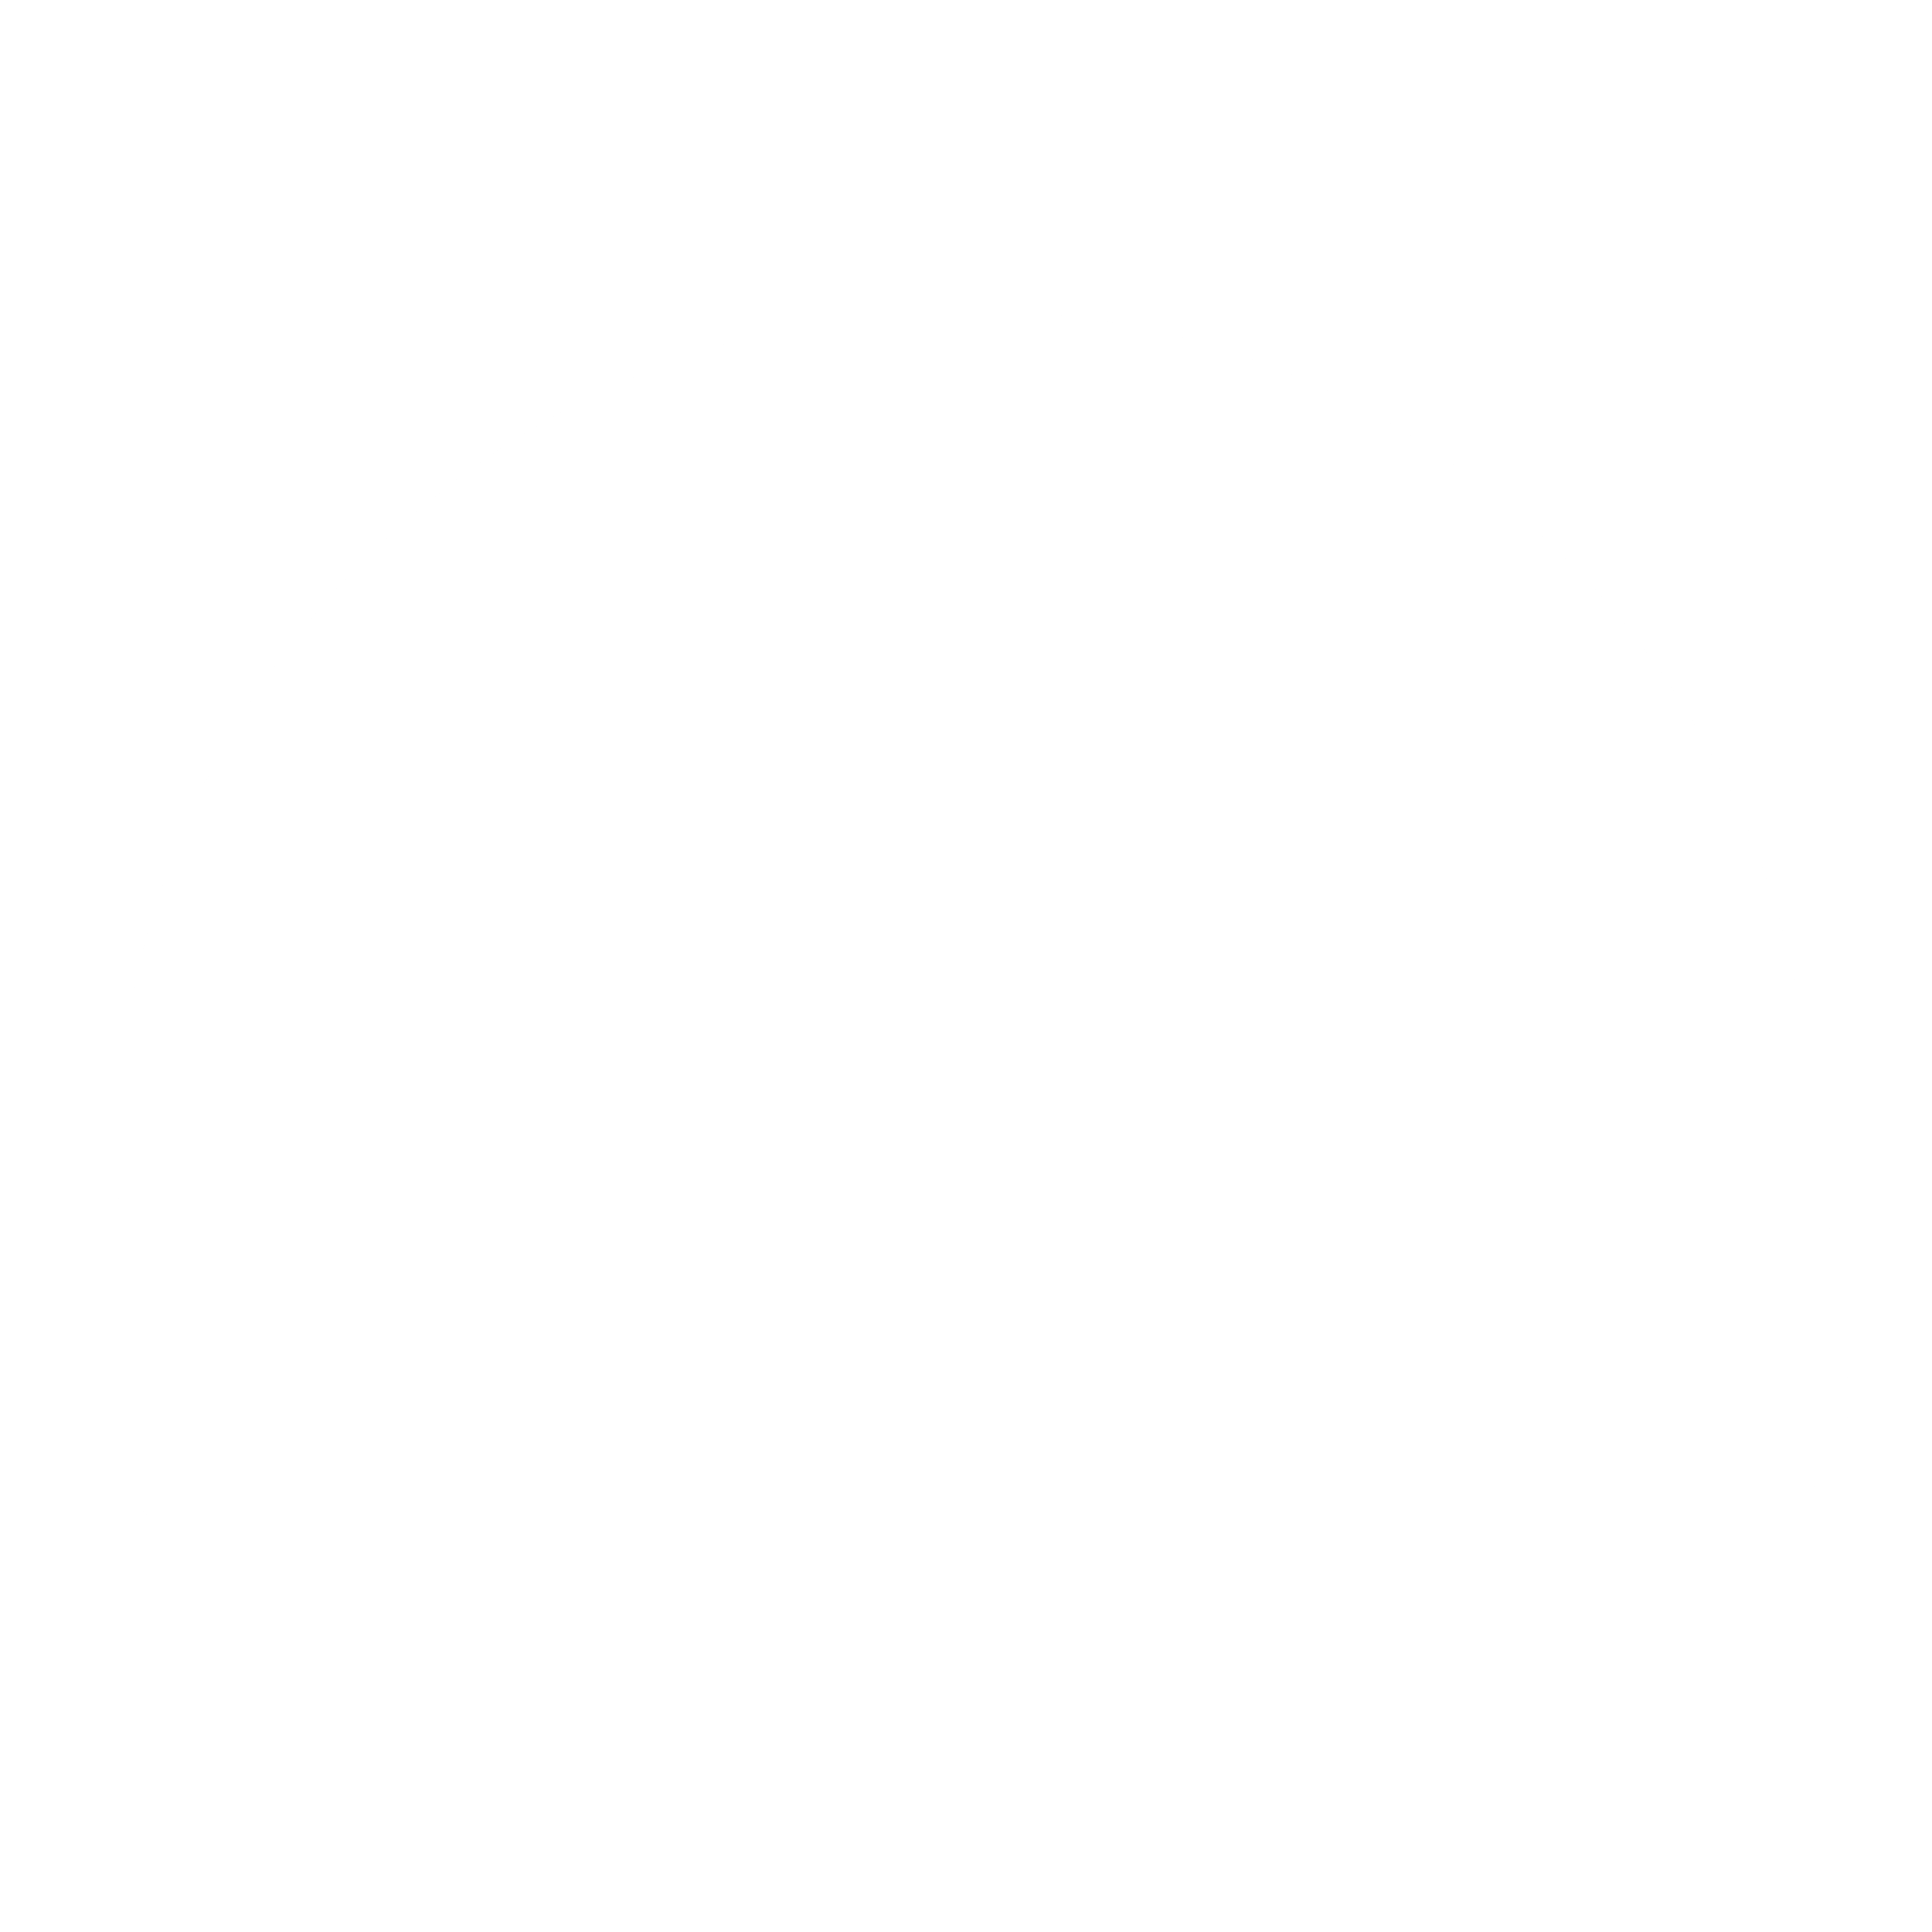 Thick line png. N spicy logo transparent